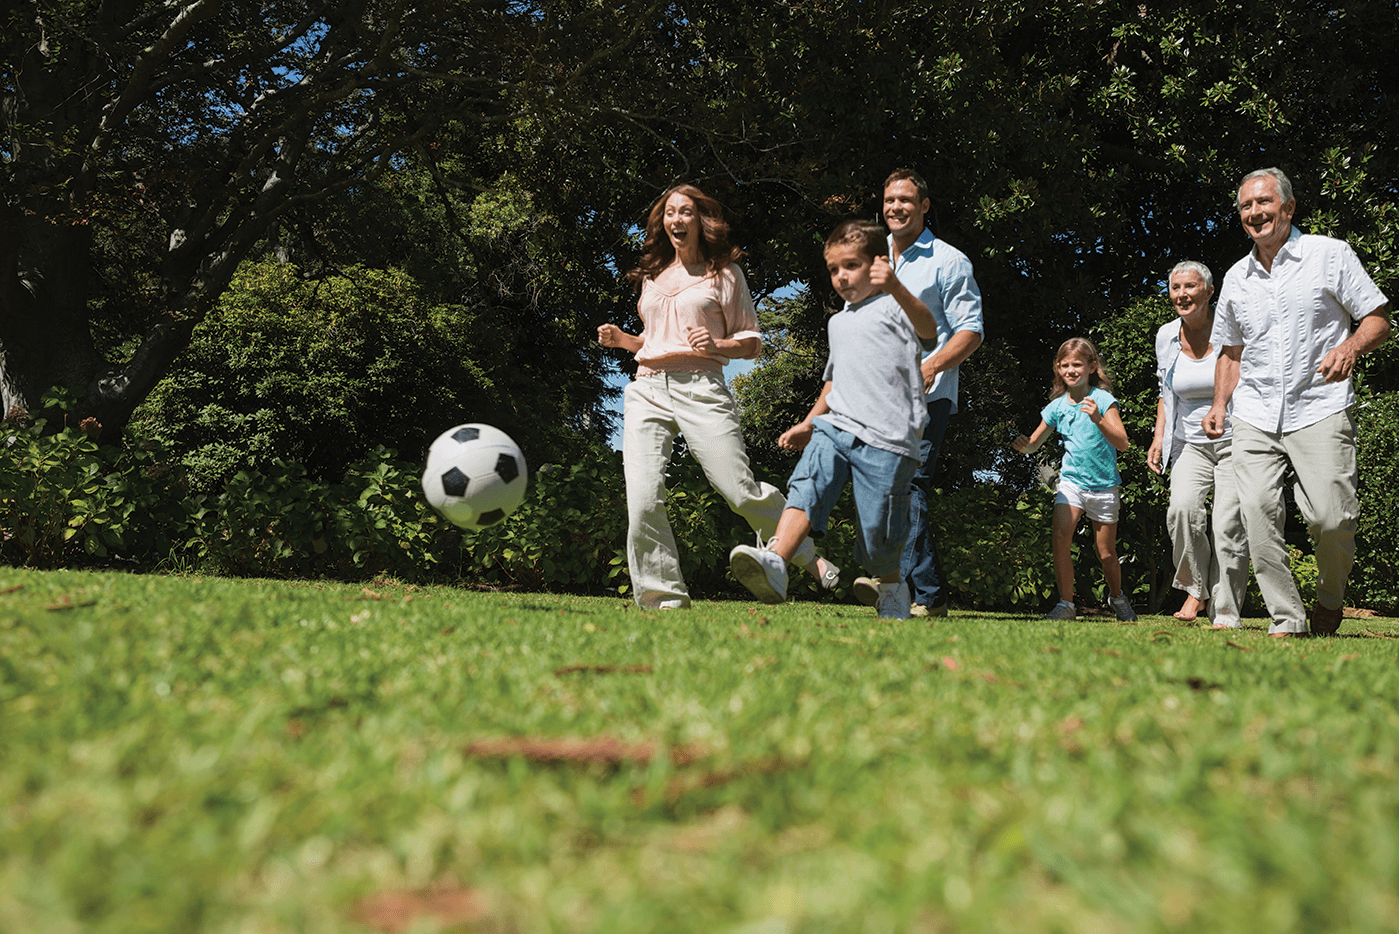 Family out with soccer ball